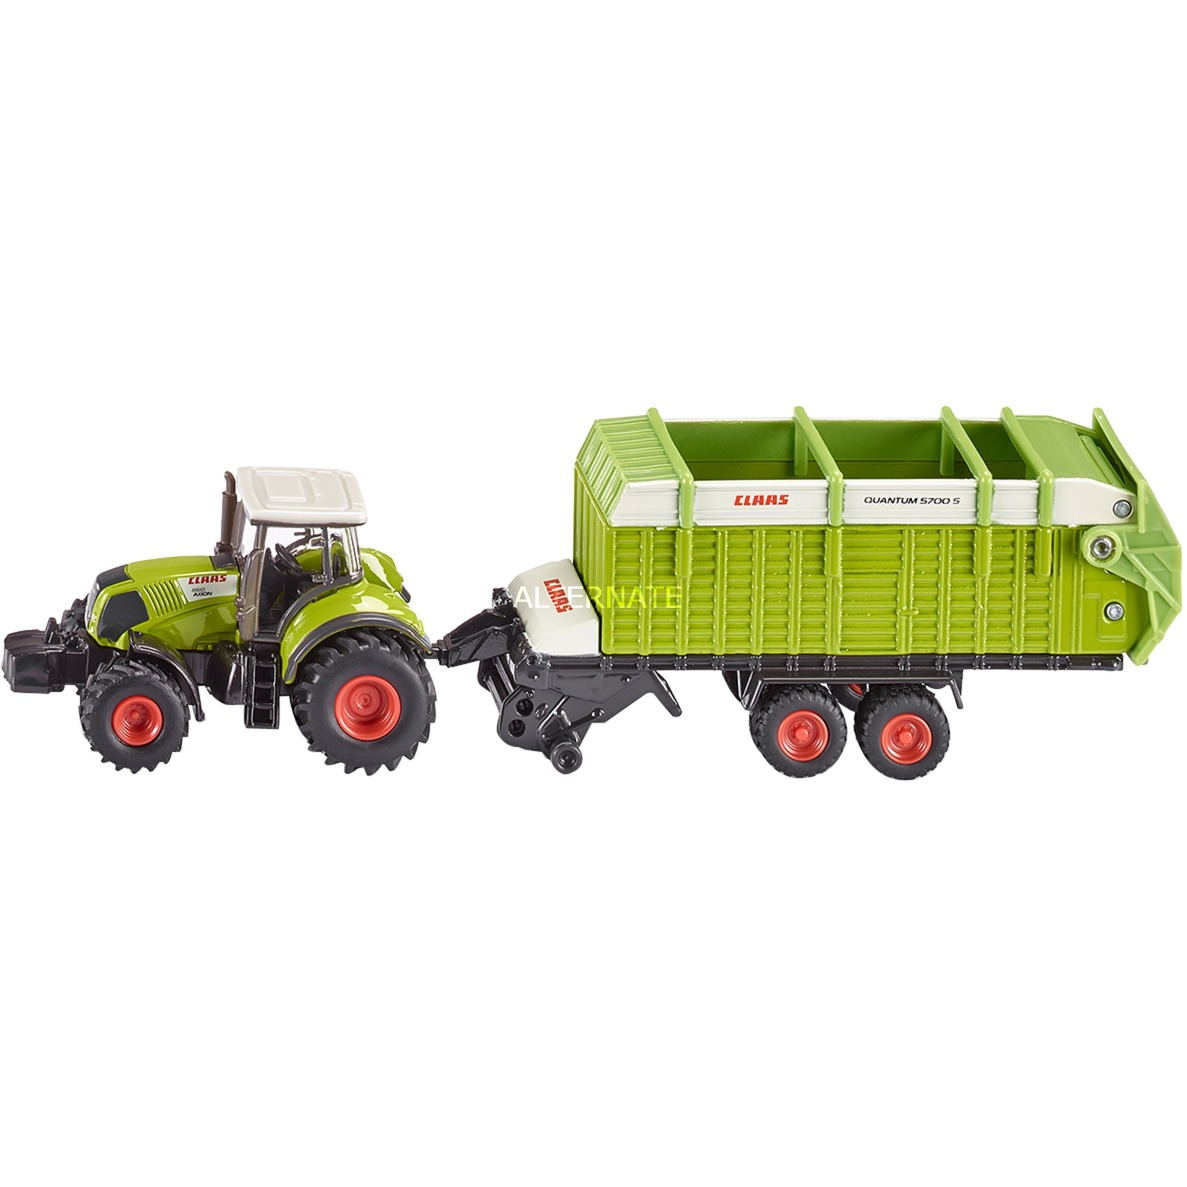 claas-with-forage-wagon-model-koretoj